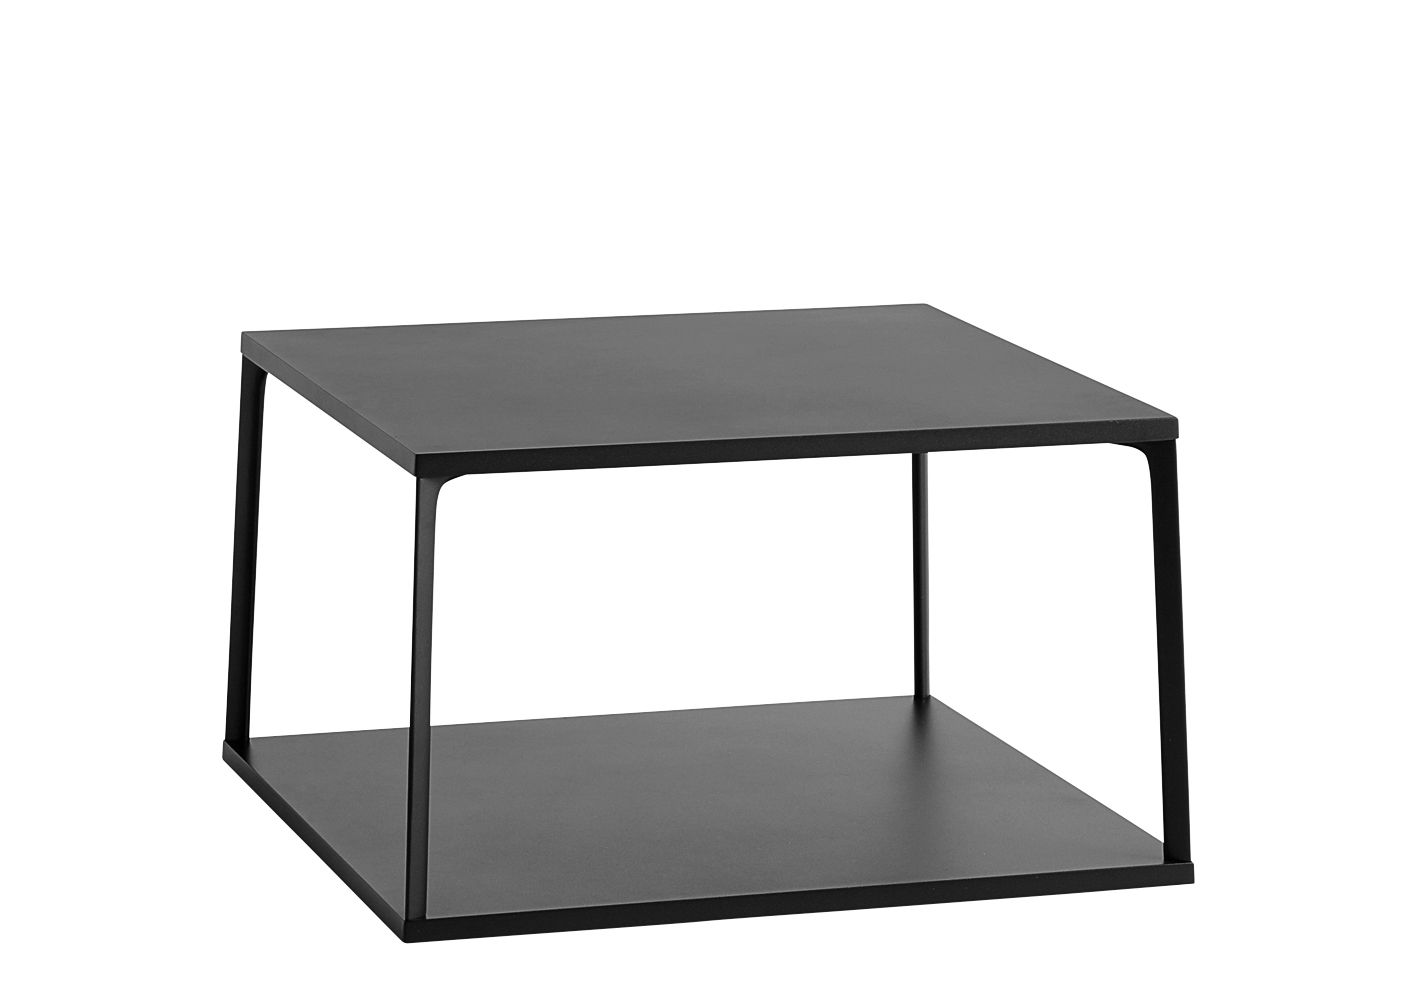 table basse eiffel hay noir l 65 x h 38 made in design. Black Bedroom Furniture Sets. Home Design Ideas